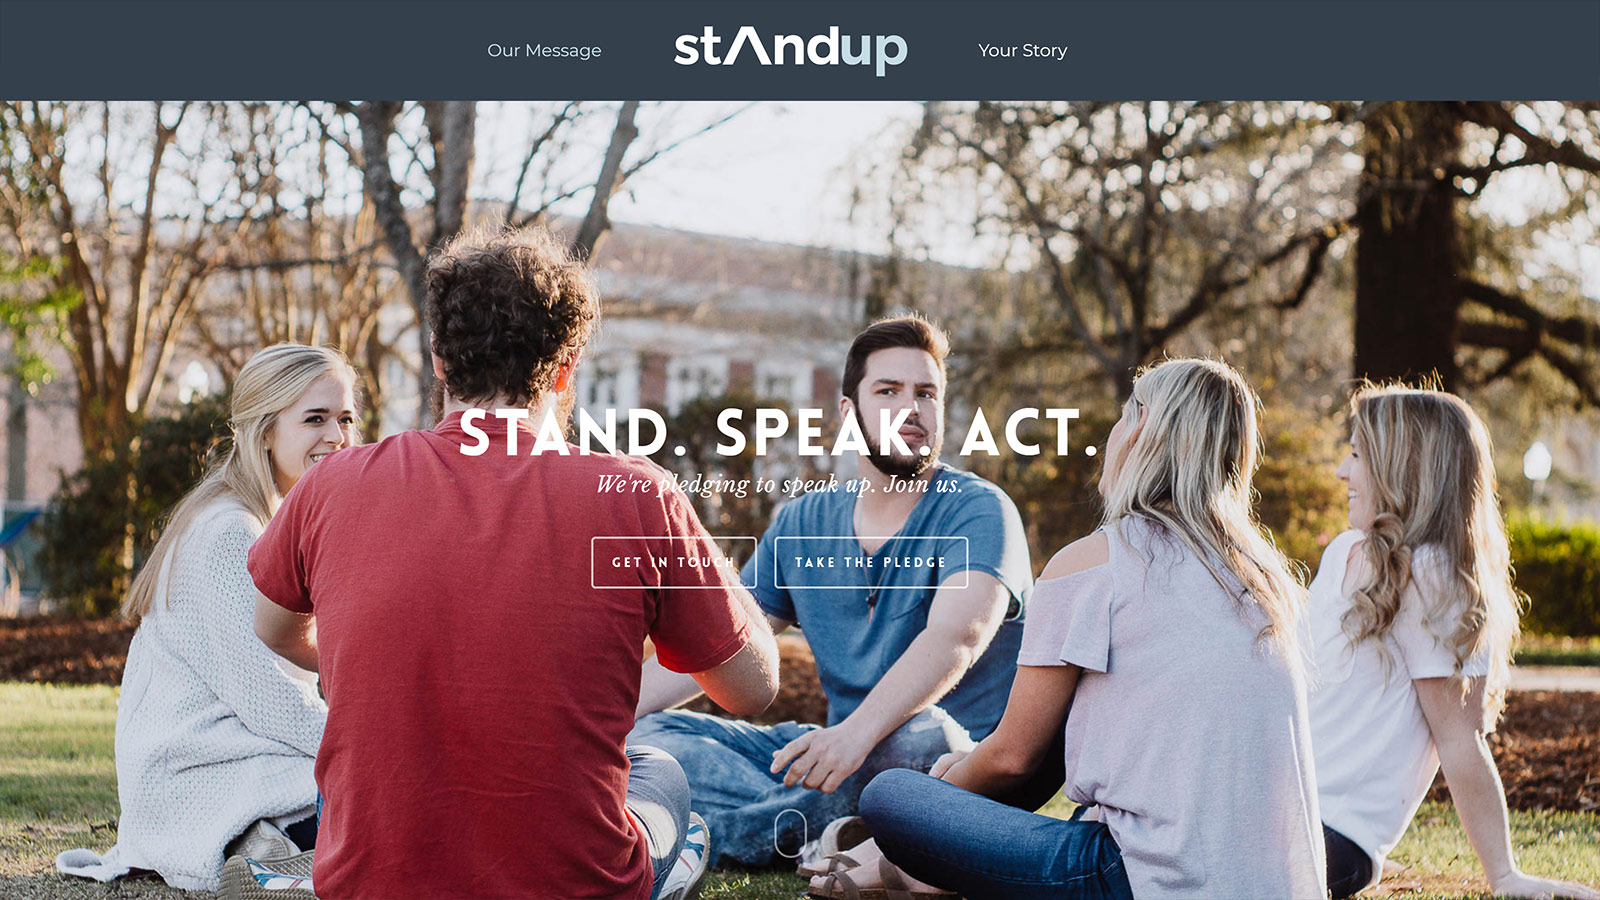 Stand Up Website